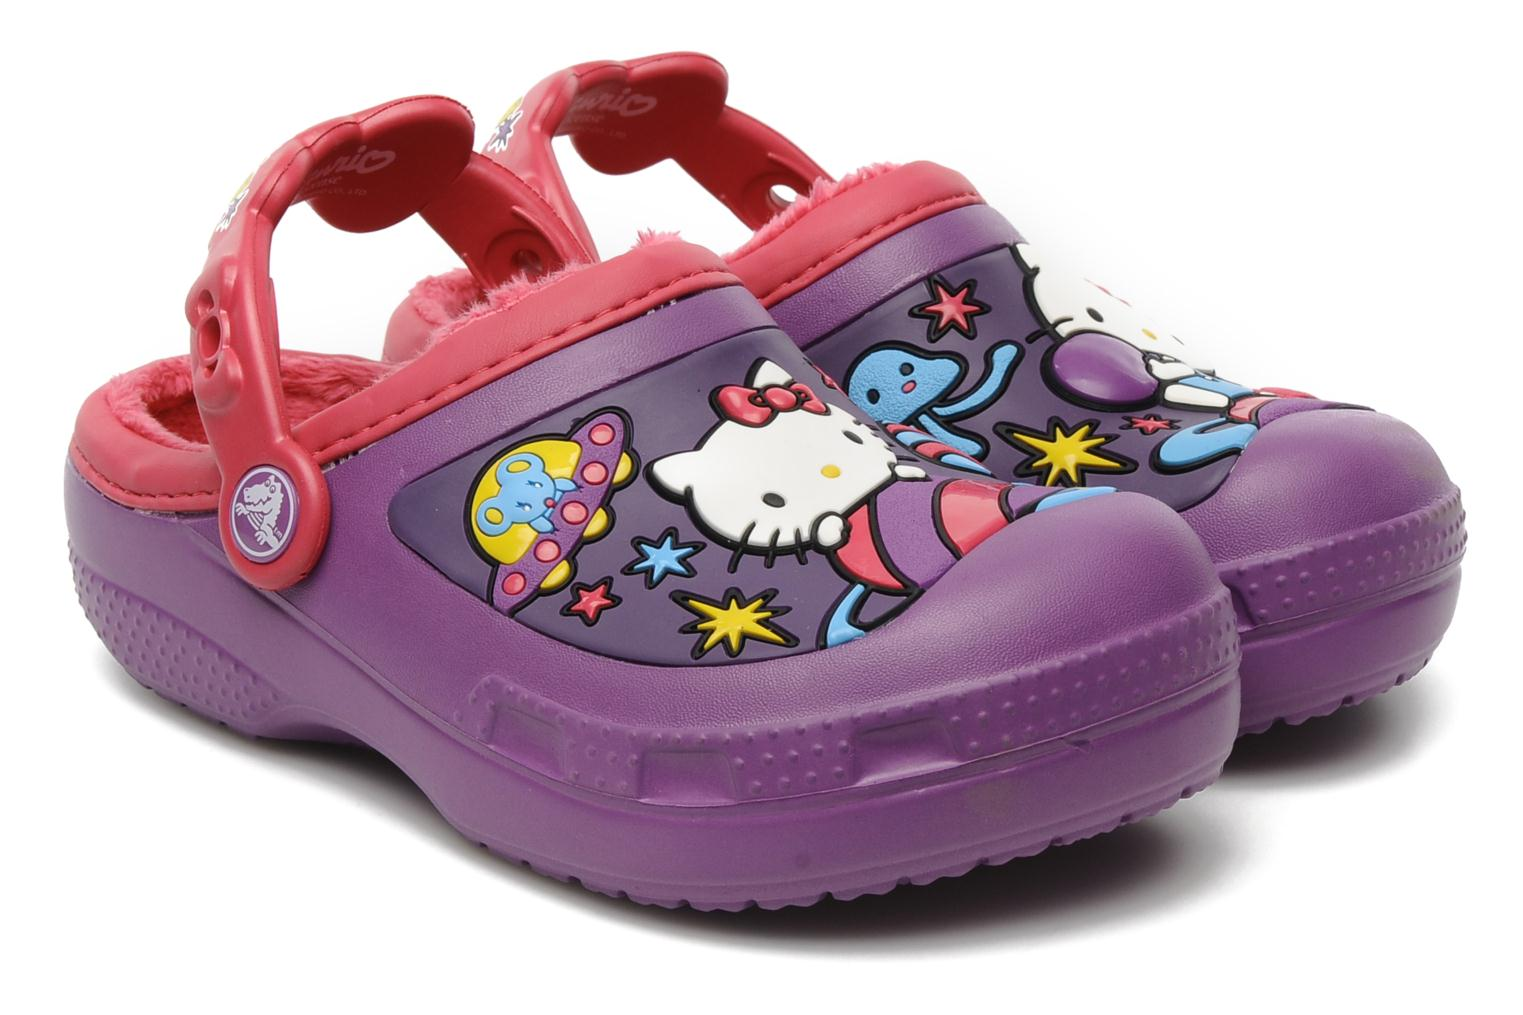 Dahlia Kitty Lined Raspberry Clog Adventure Hello Space Crocs RWfqS7H